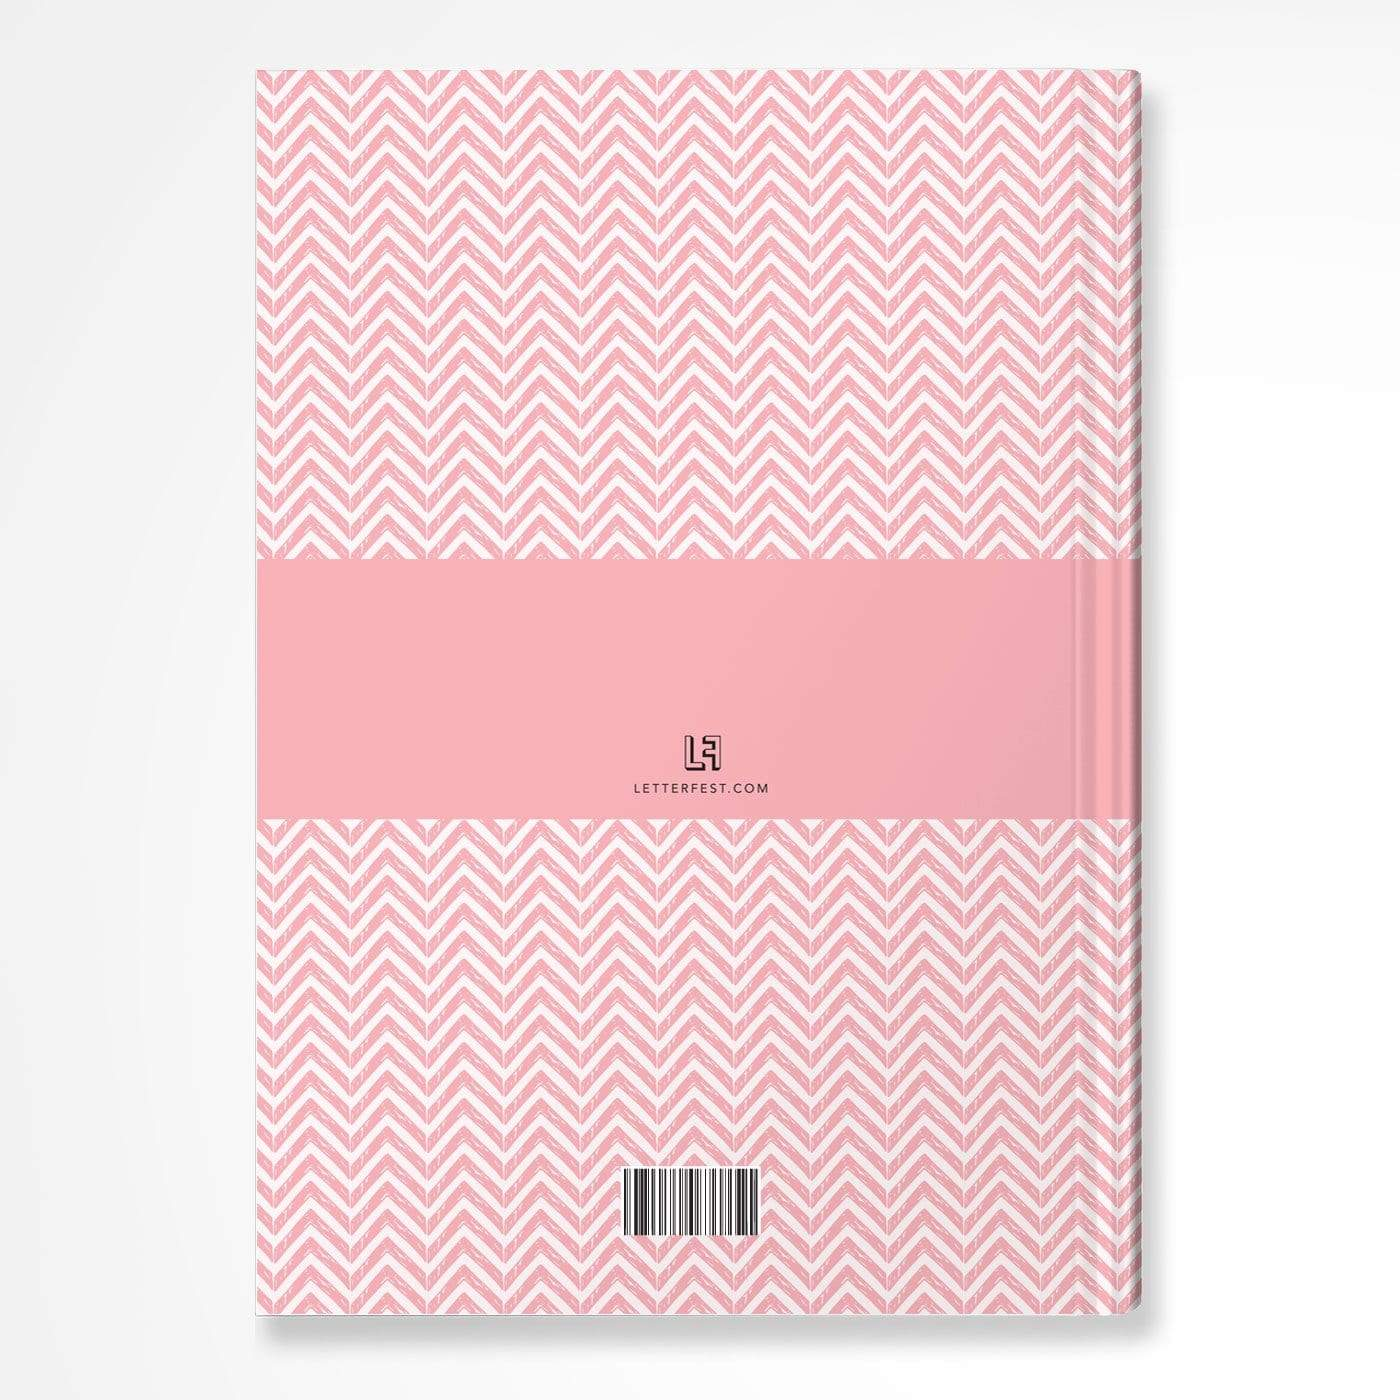 letterfest notebook Chevron Pink